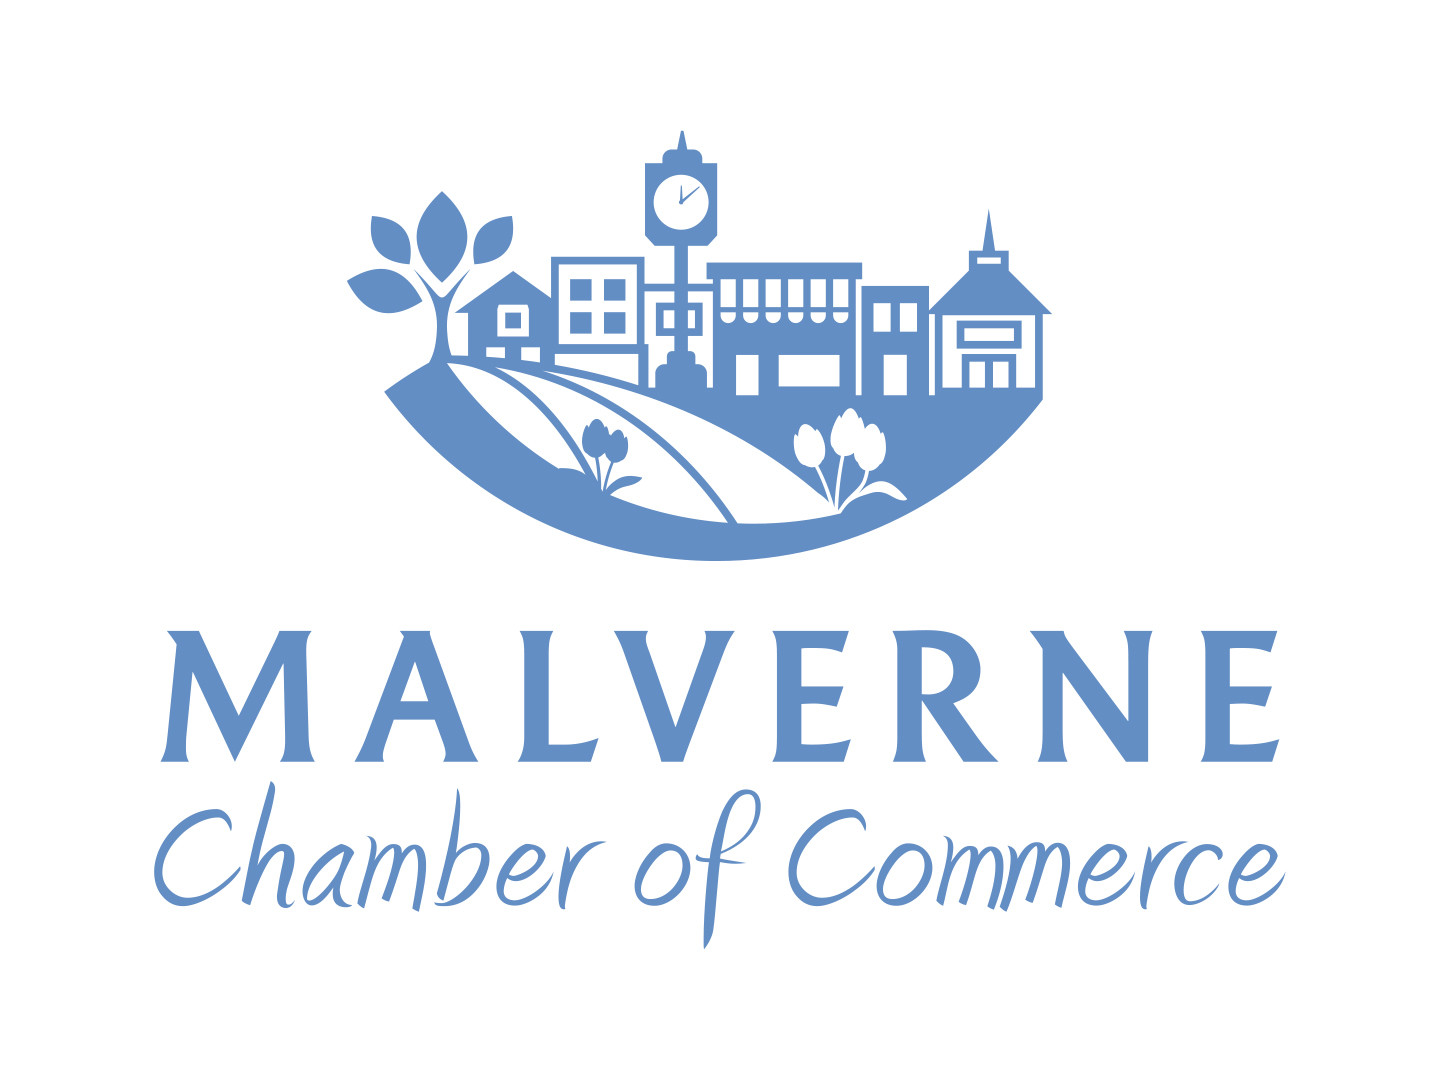 Malverne's business and professional organization has a new, more traditional name: The Malverne Chamber of Commerce.